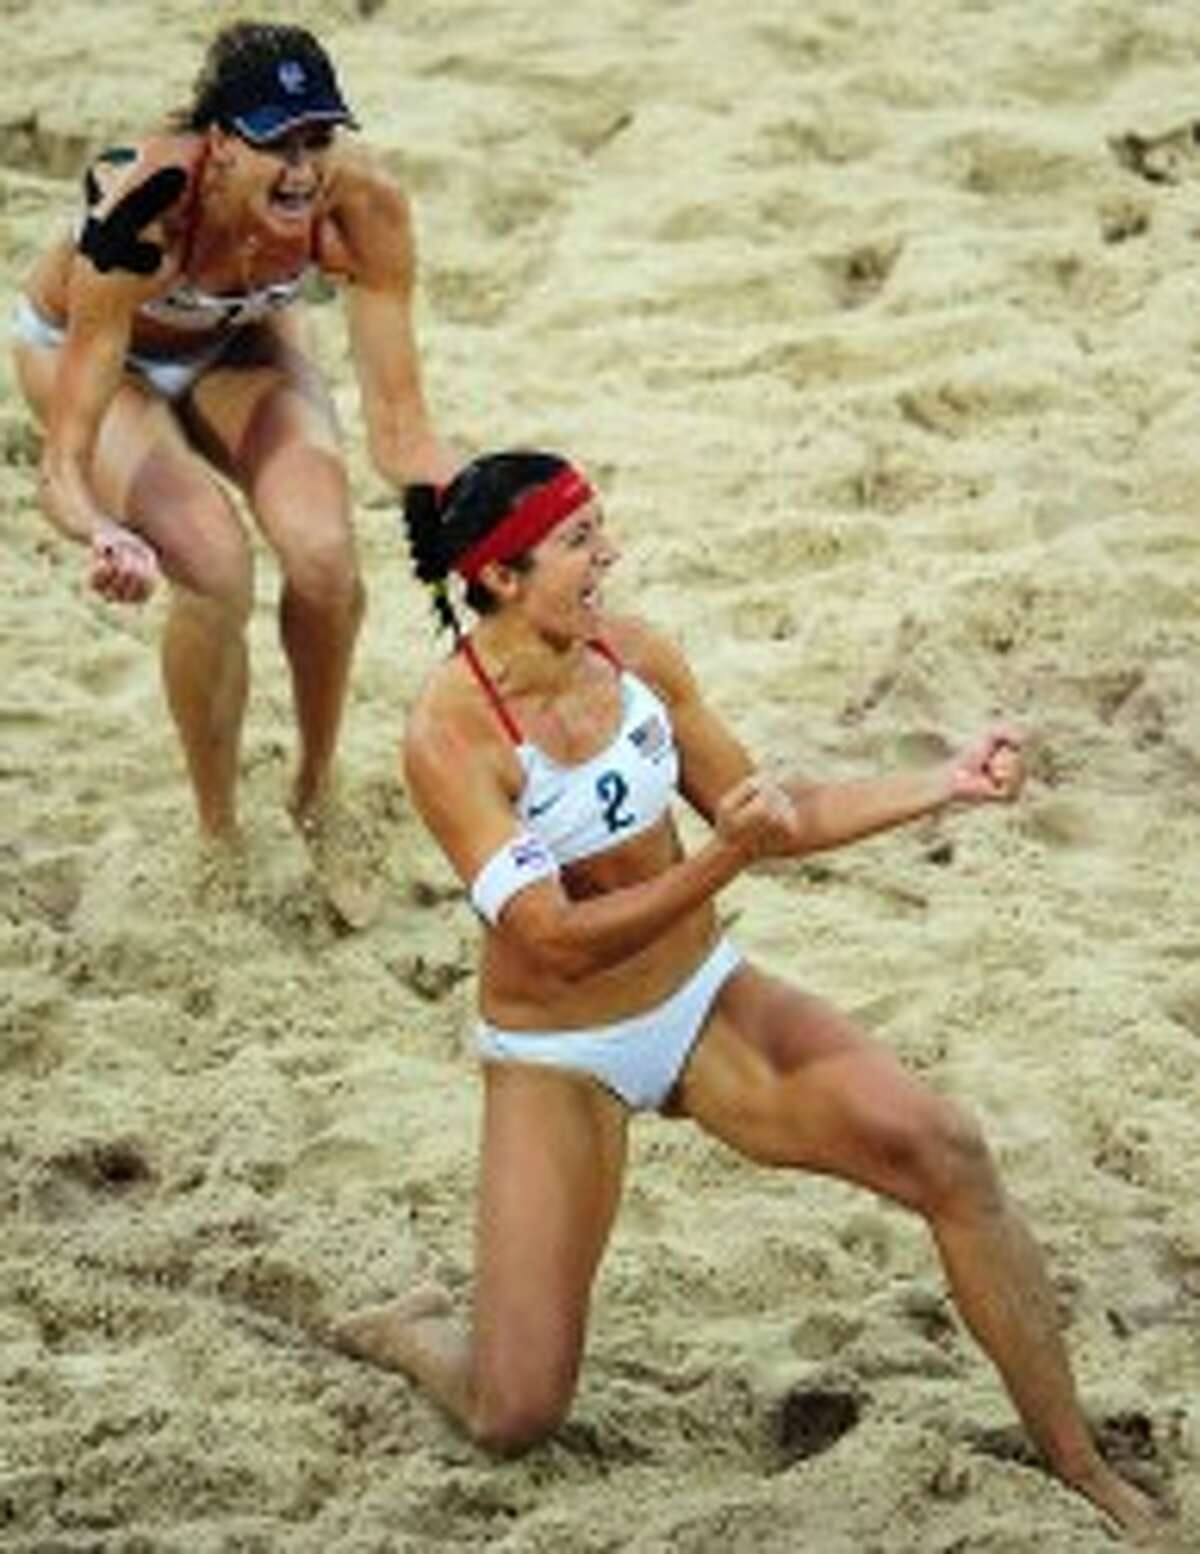 SPIKERS: Kerri Walsh, left, and Misty May-Treanor, right, celebrate after winning the women's beach volleyball gold medal match at the 2008 Beijing Summer Games. It was the pair's second Olympic gold medal in the event.